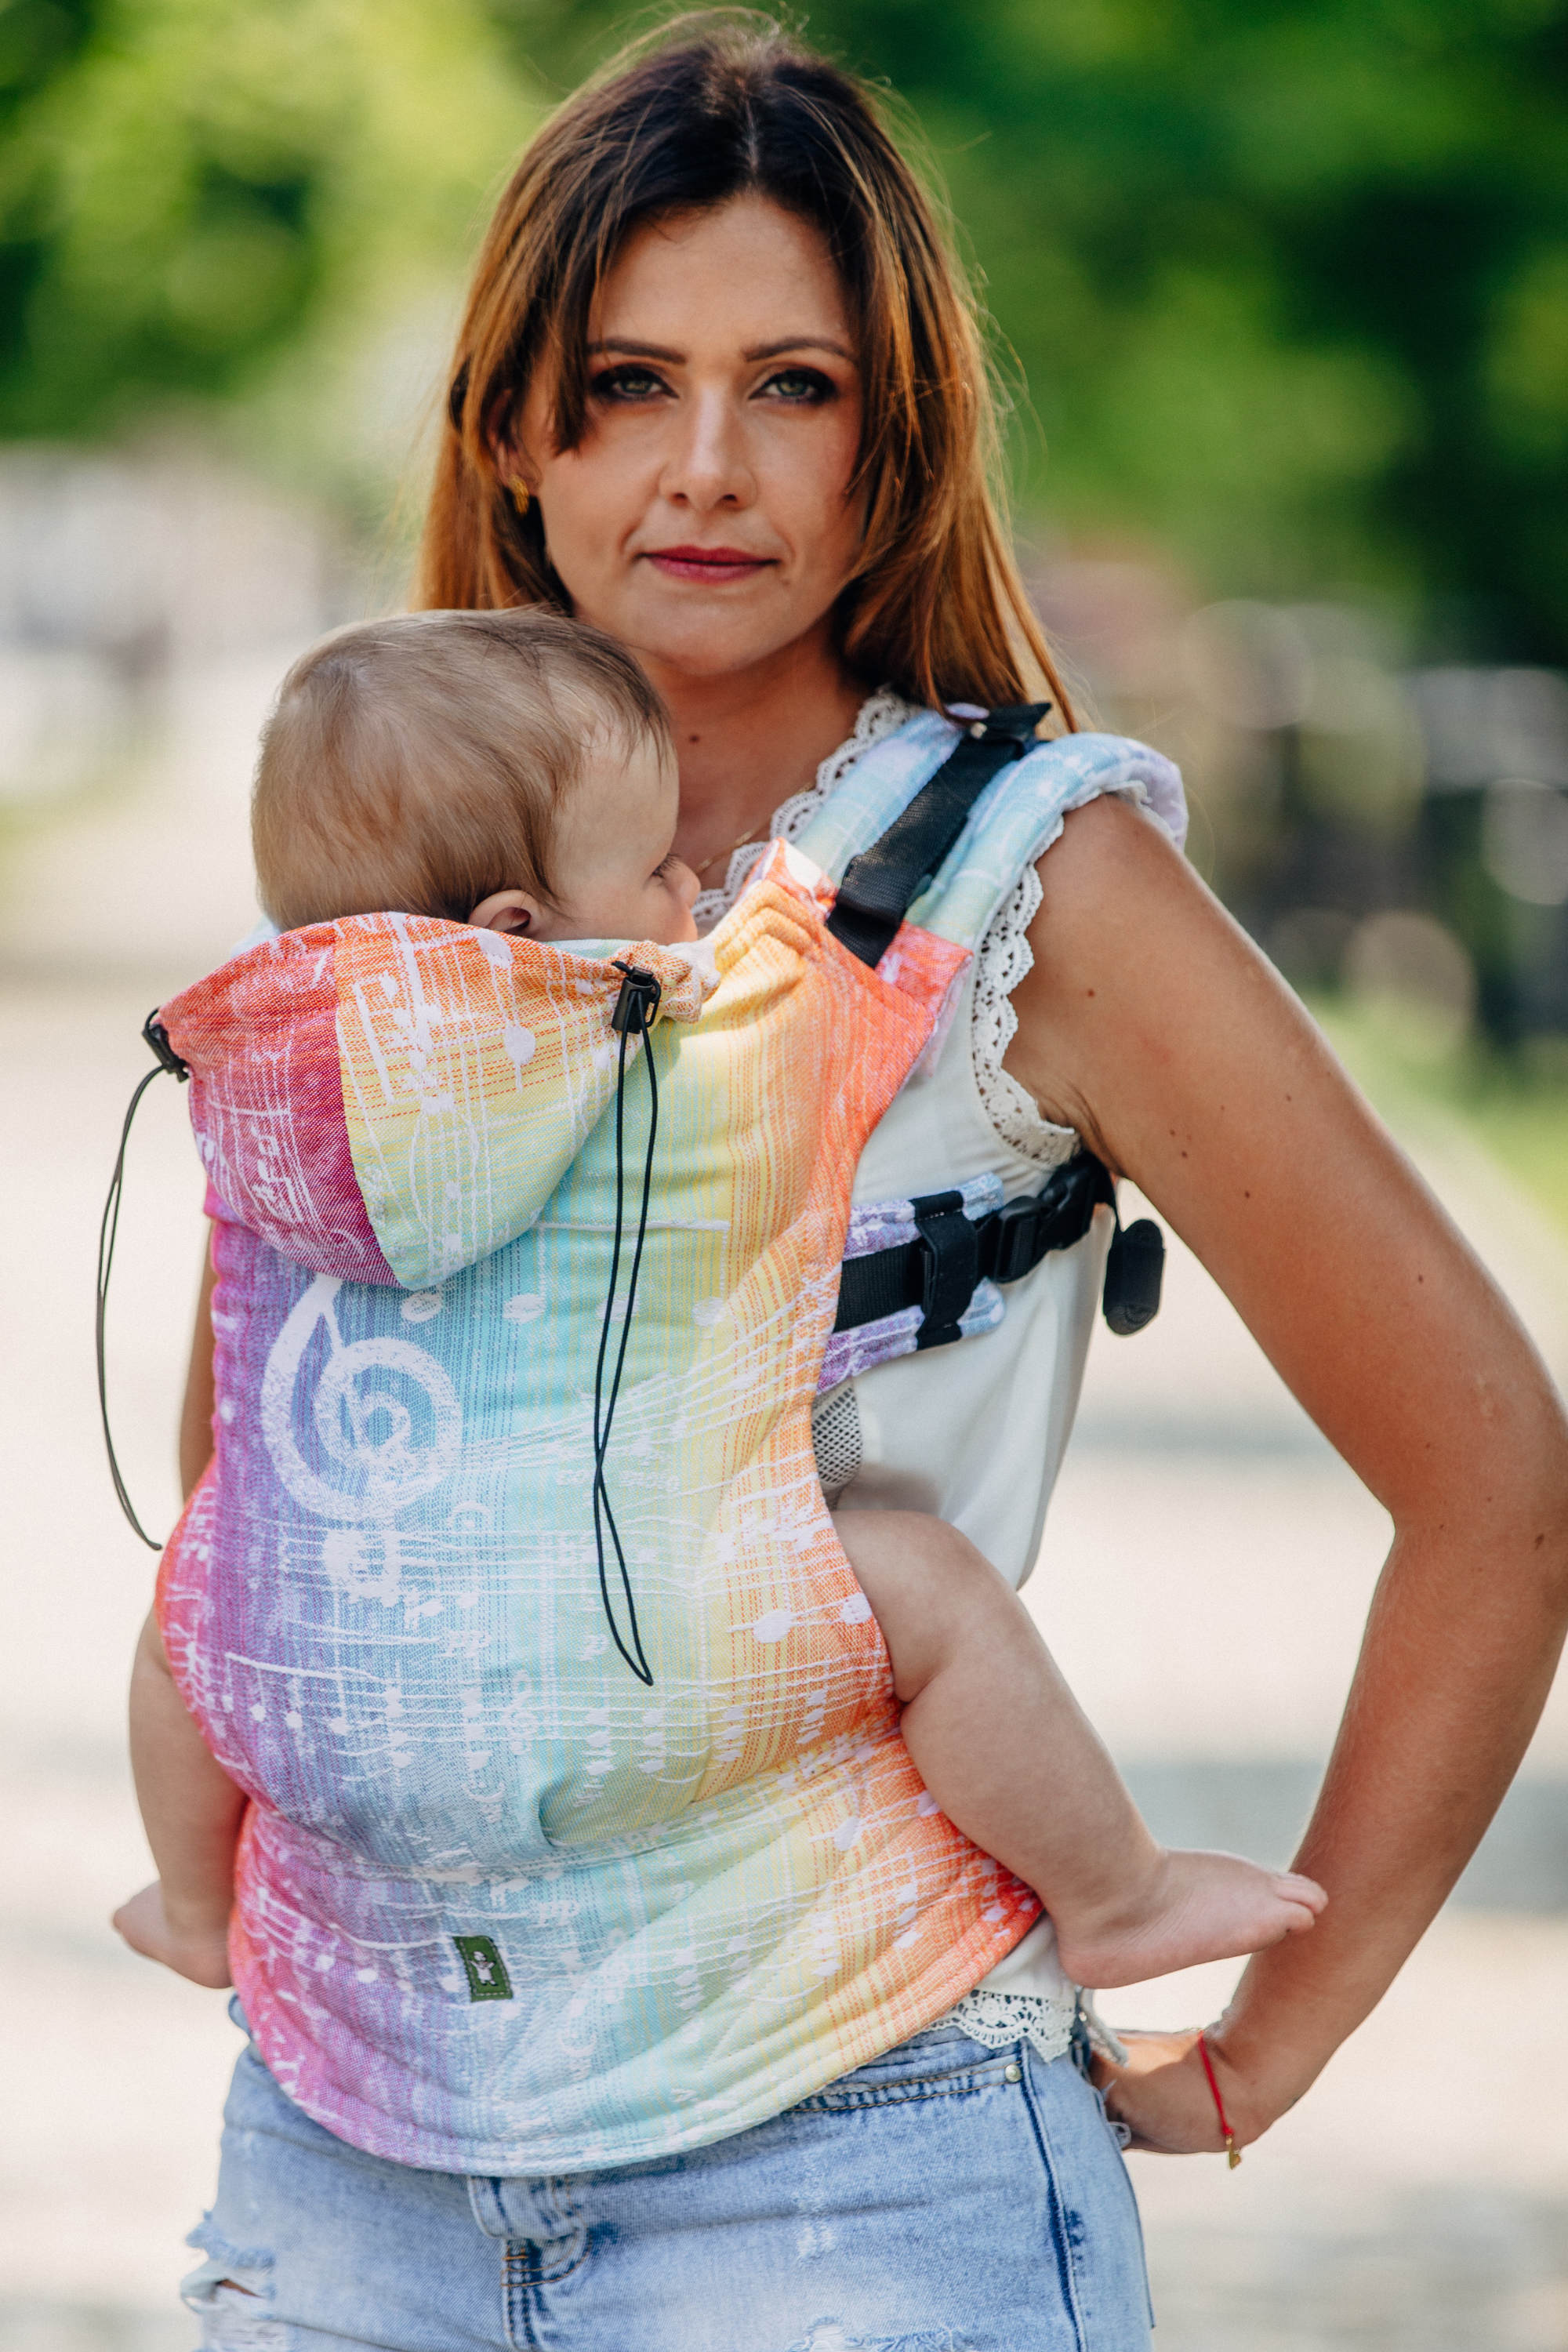 597a2aca85b LennyUp Infant Buckle Carrier - Symphony Rainbow Light – Snips ...